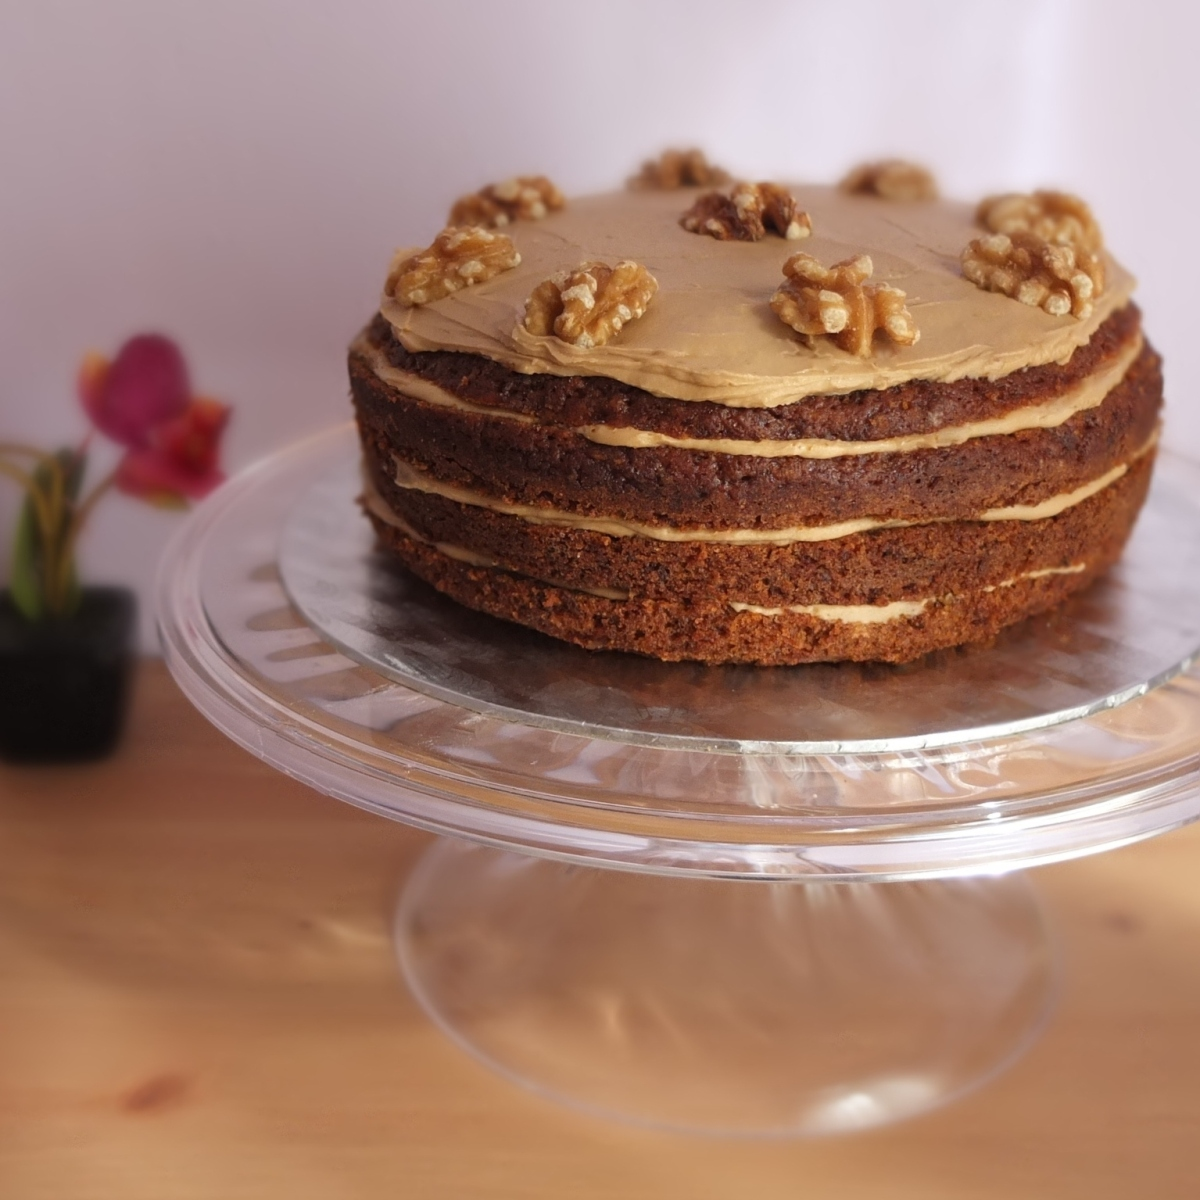 Slightly healthier coffee and walnut cake with carrot recipe!